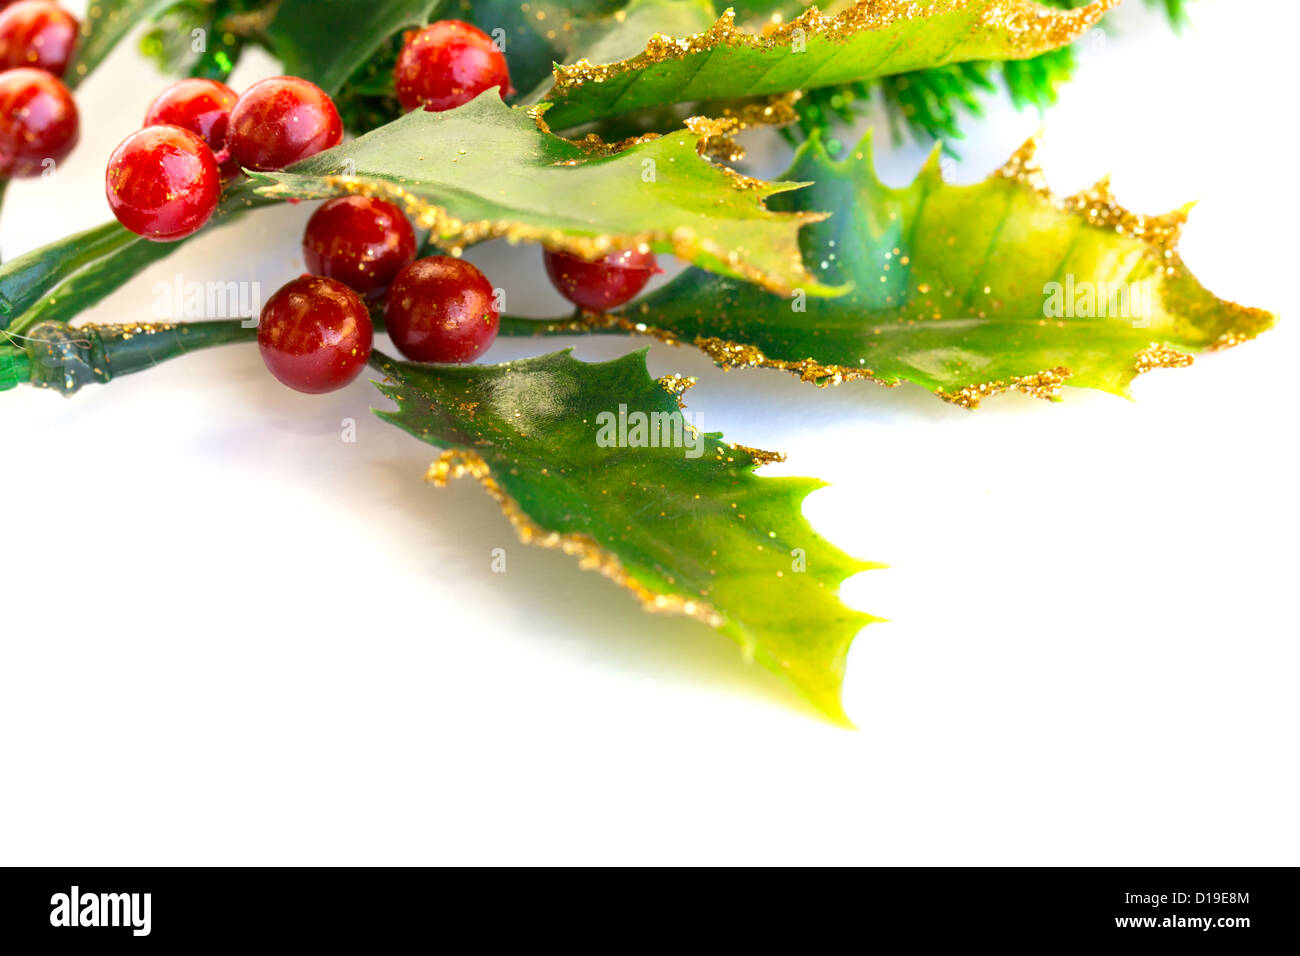 holly berry pflanze mit roten beeren auf wei em hintergrund weihnachtsdekoration stockfoto. Black Bedroom Furniture Sets. Home Design Ideas